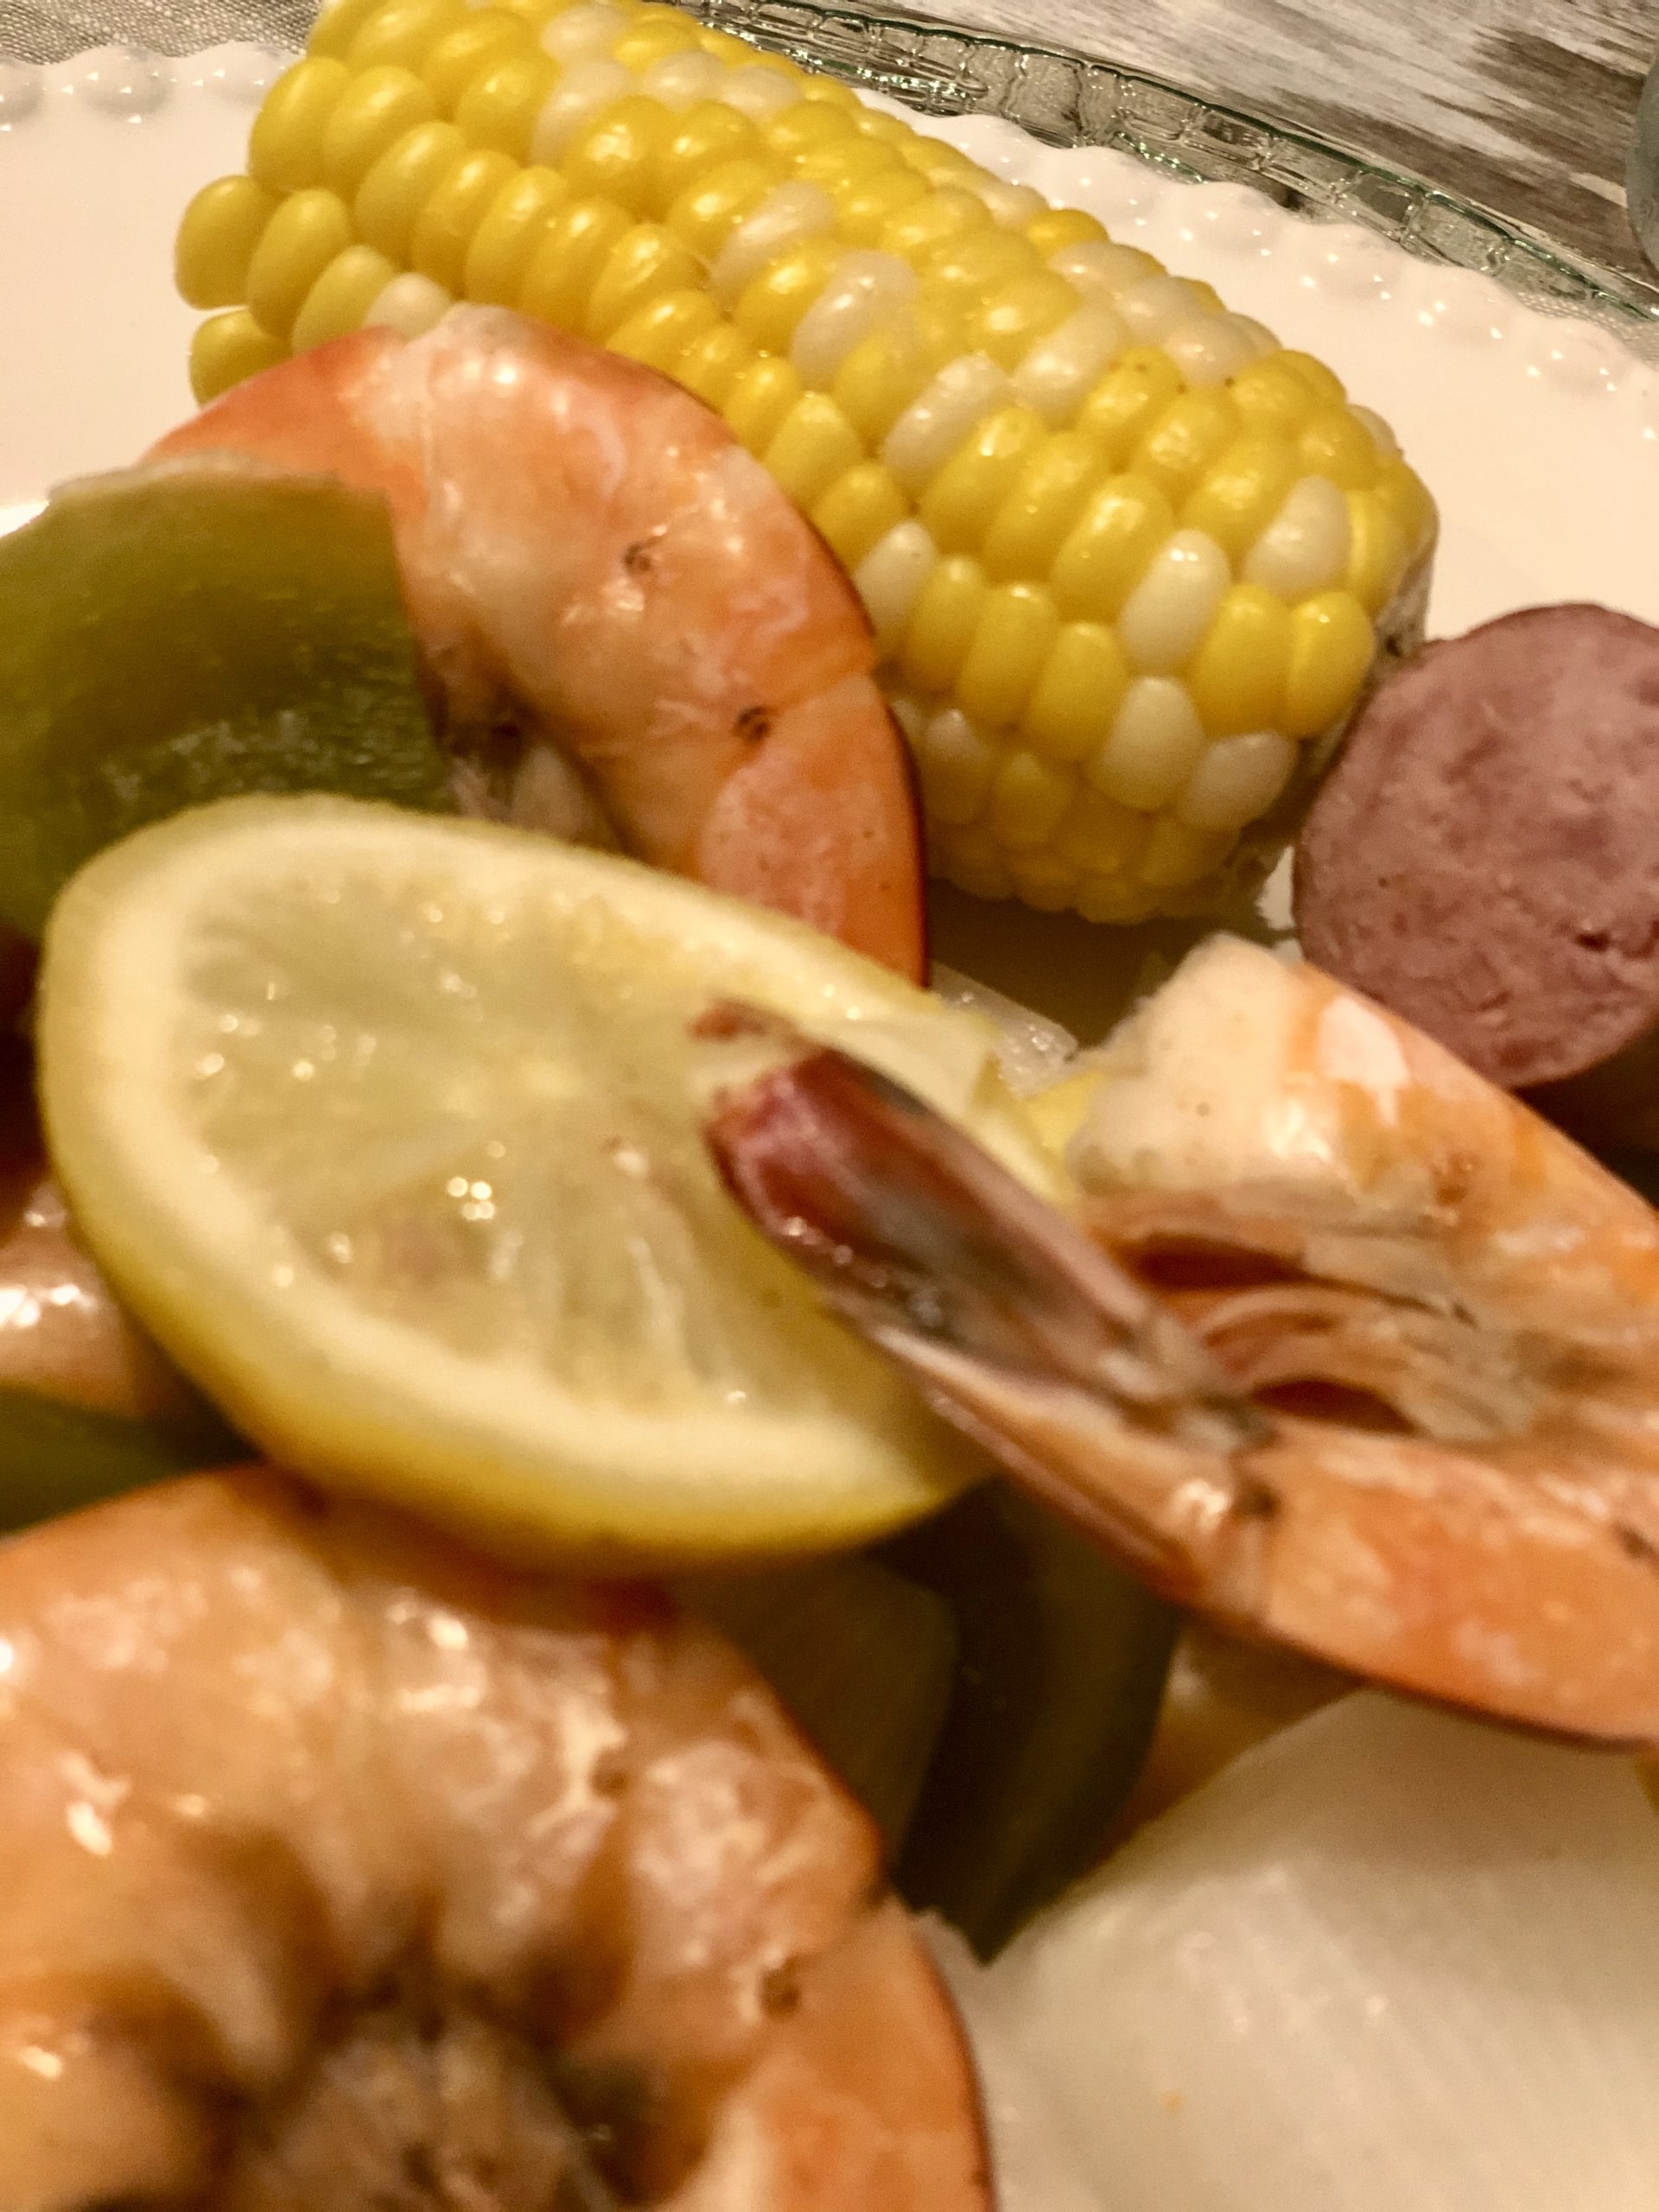 Shrimp boil with lemons, sausage and corn on the cobb